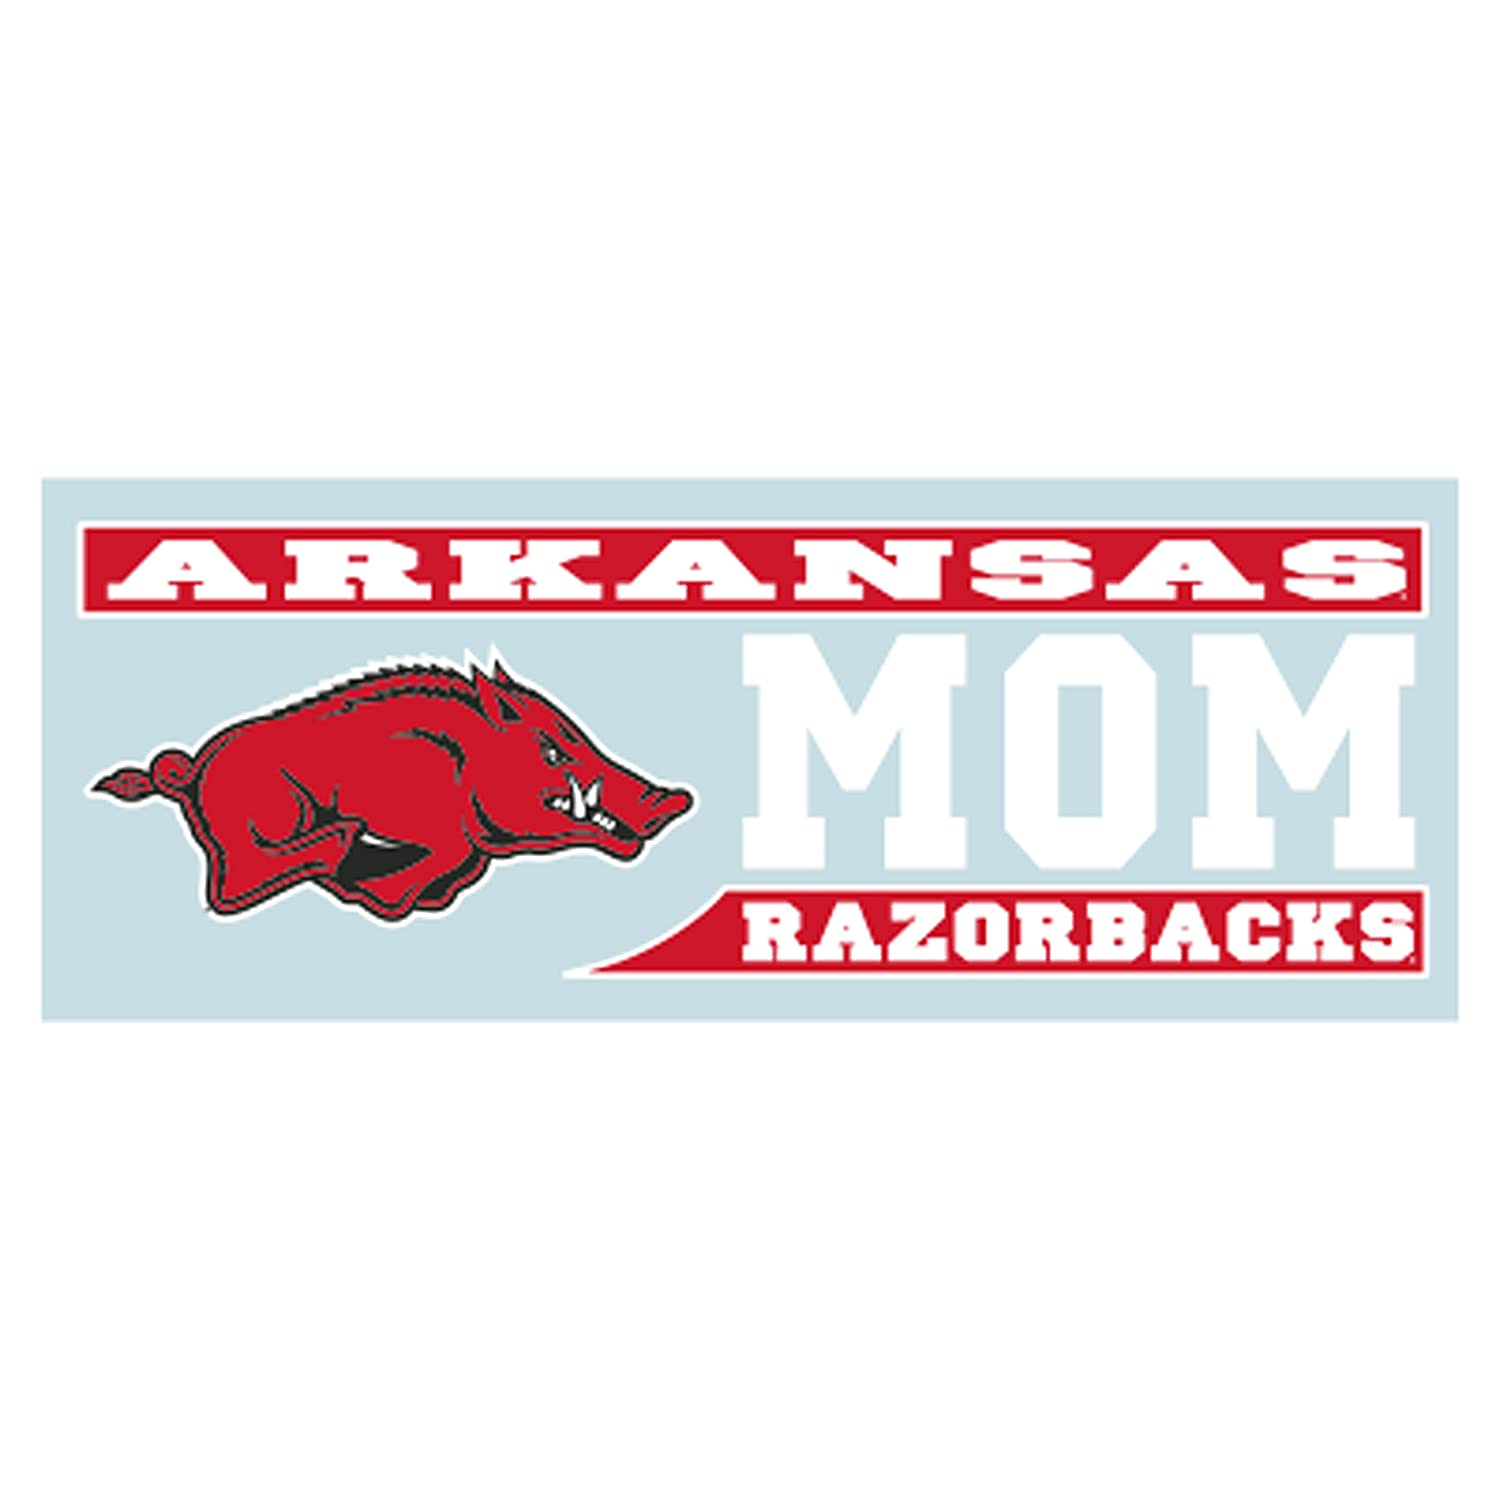 b1c3788b Amazon.com : Arkansas Razorbacks Decal : Sports & Outdoors